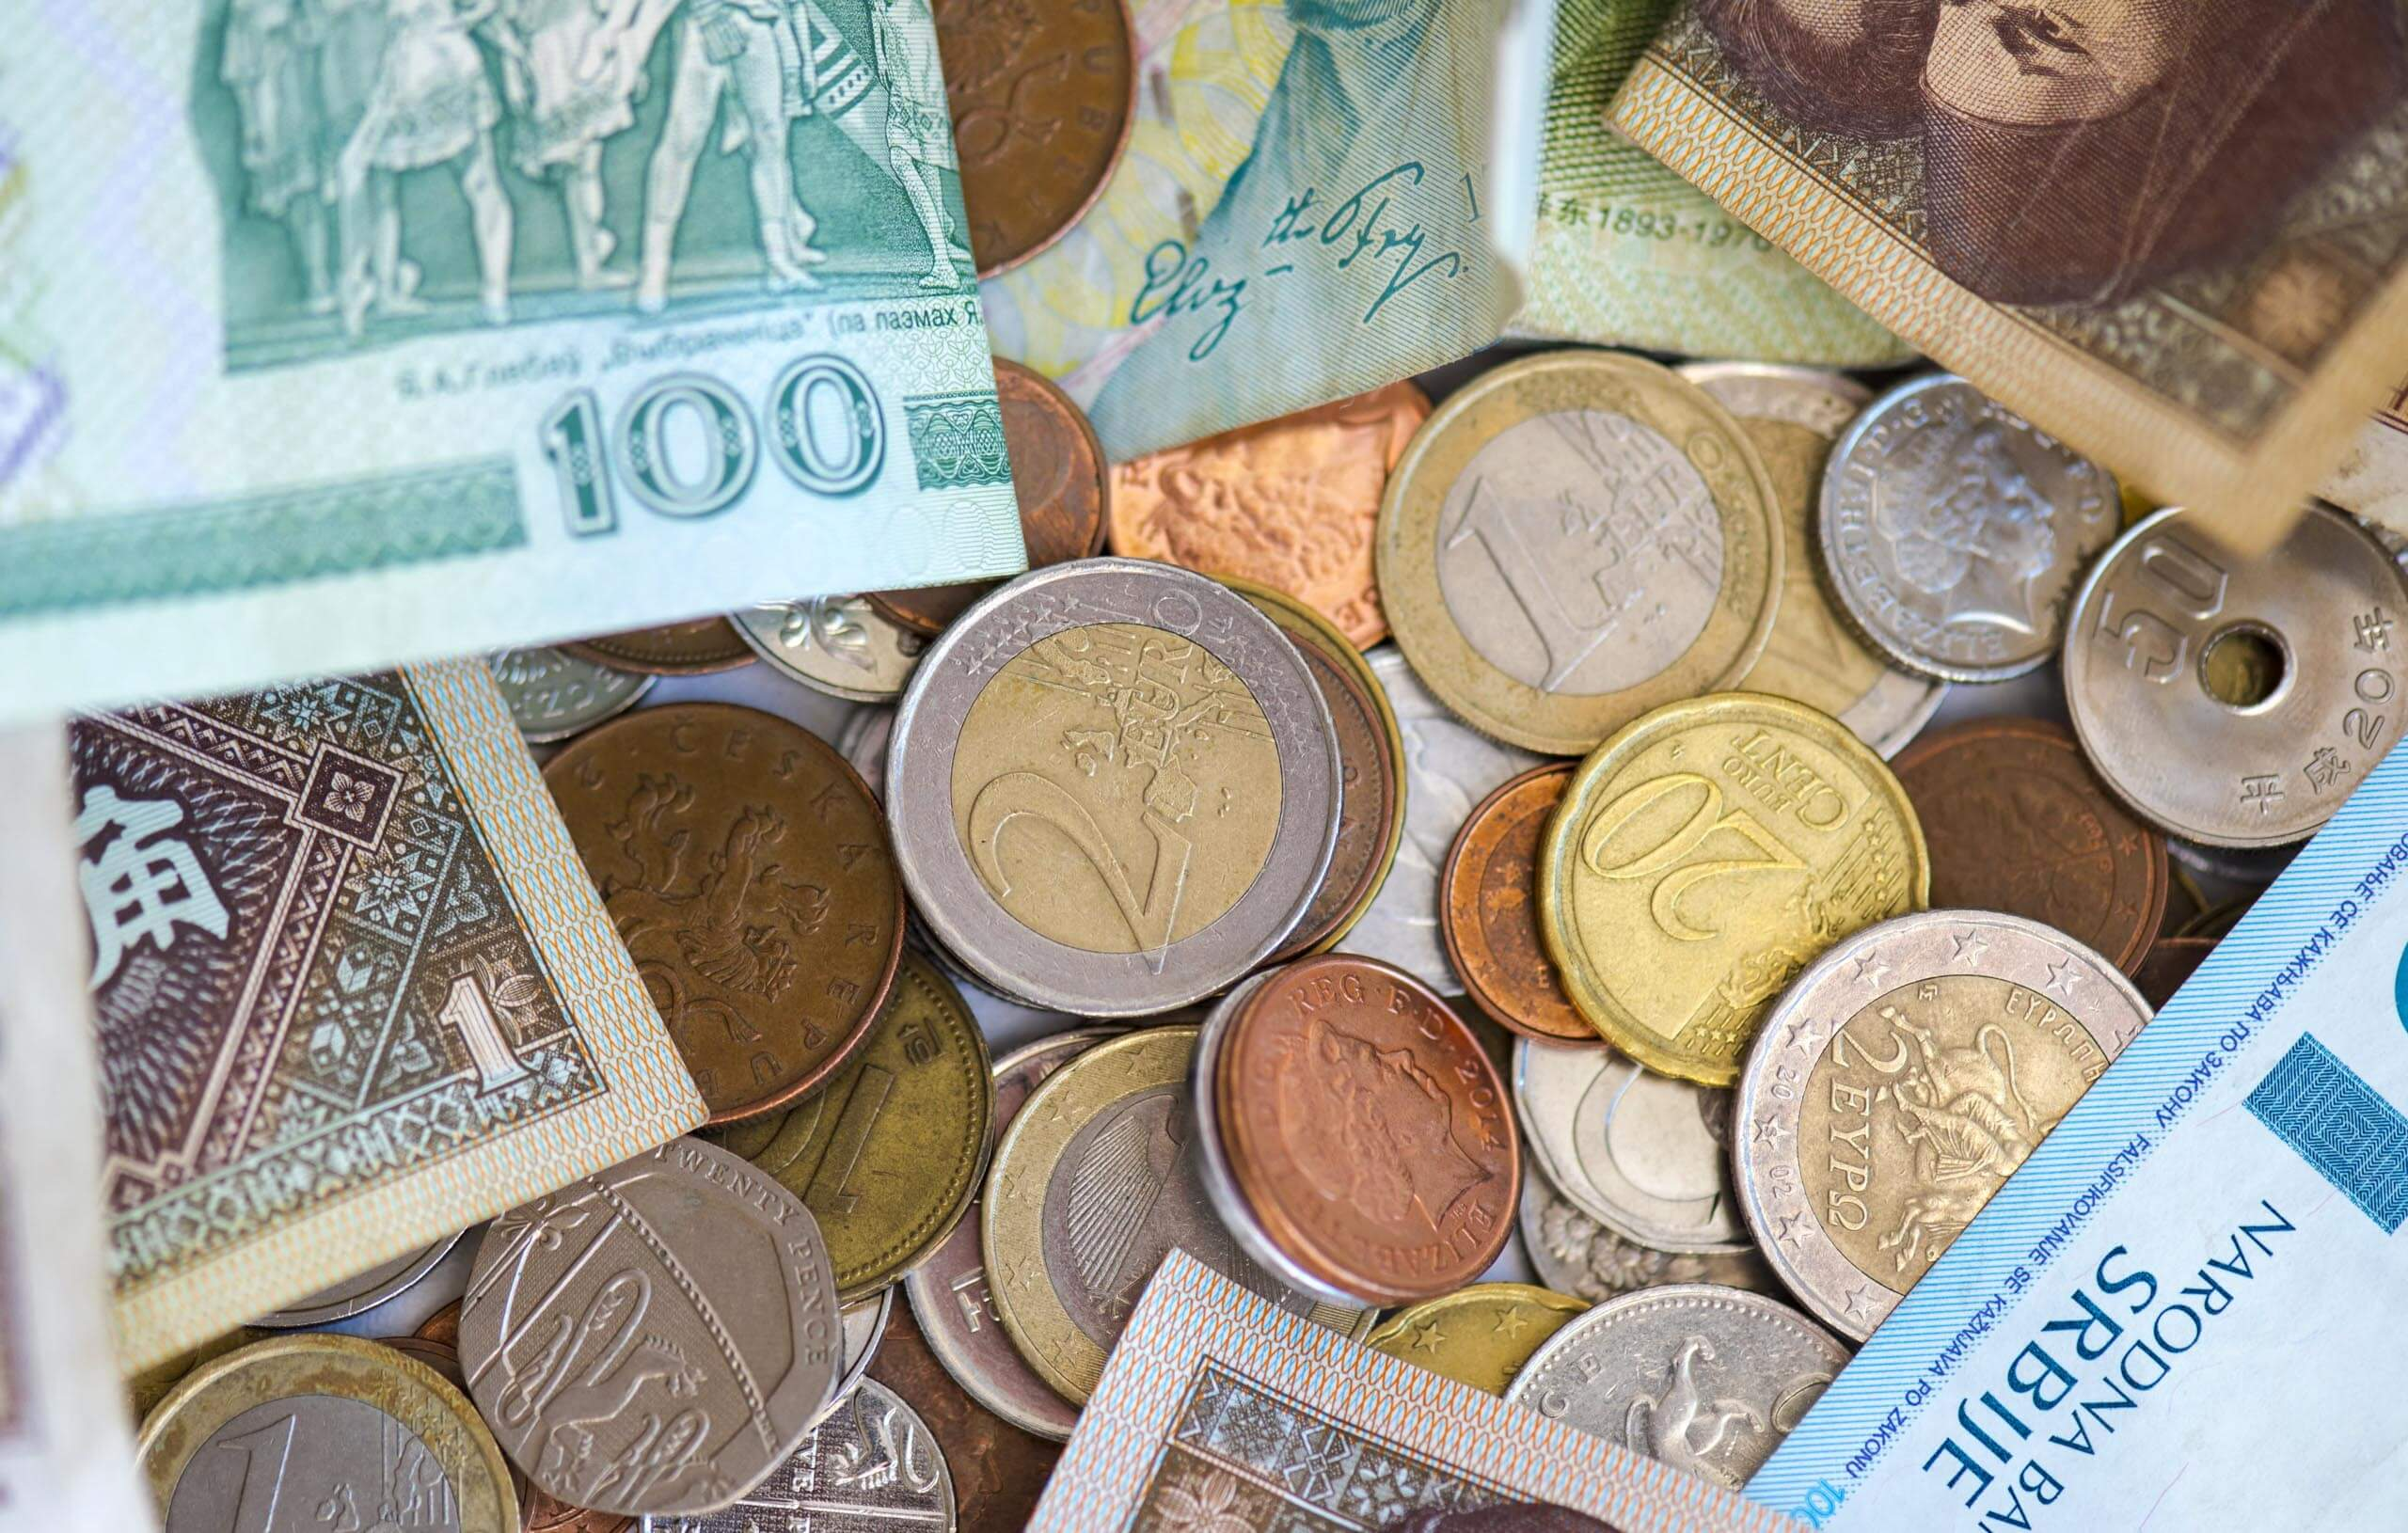 A display of foreign currency